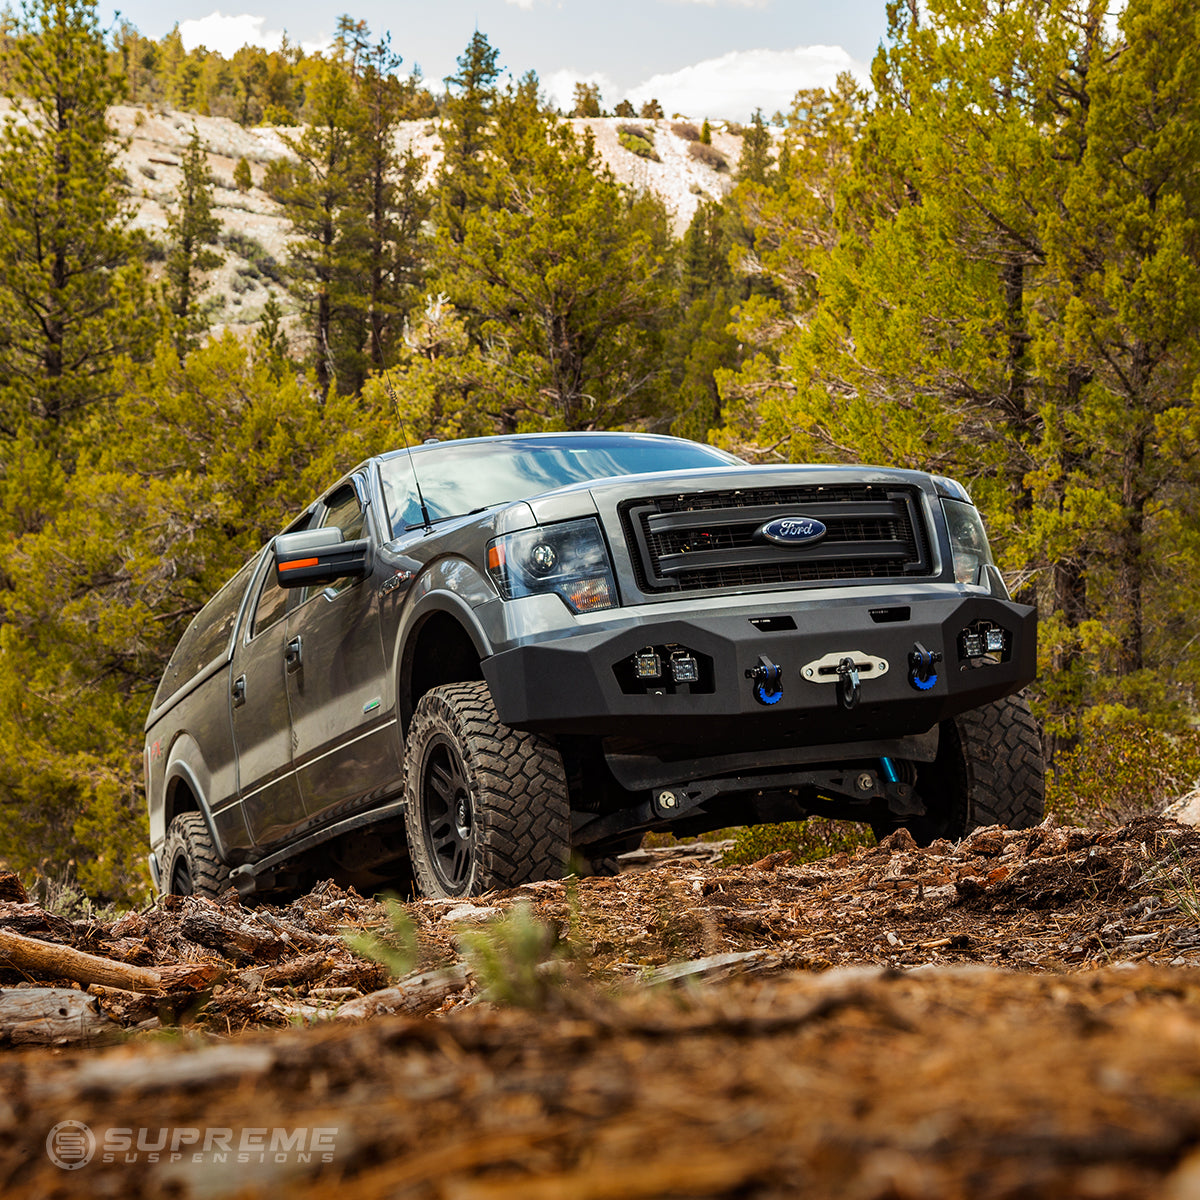 Reasons To Add a Lift Kit To Your Vehicle